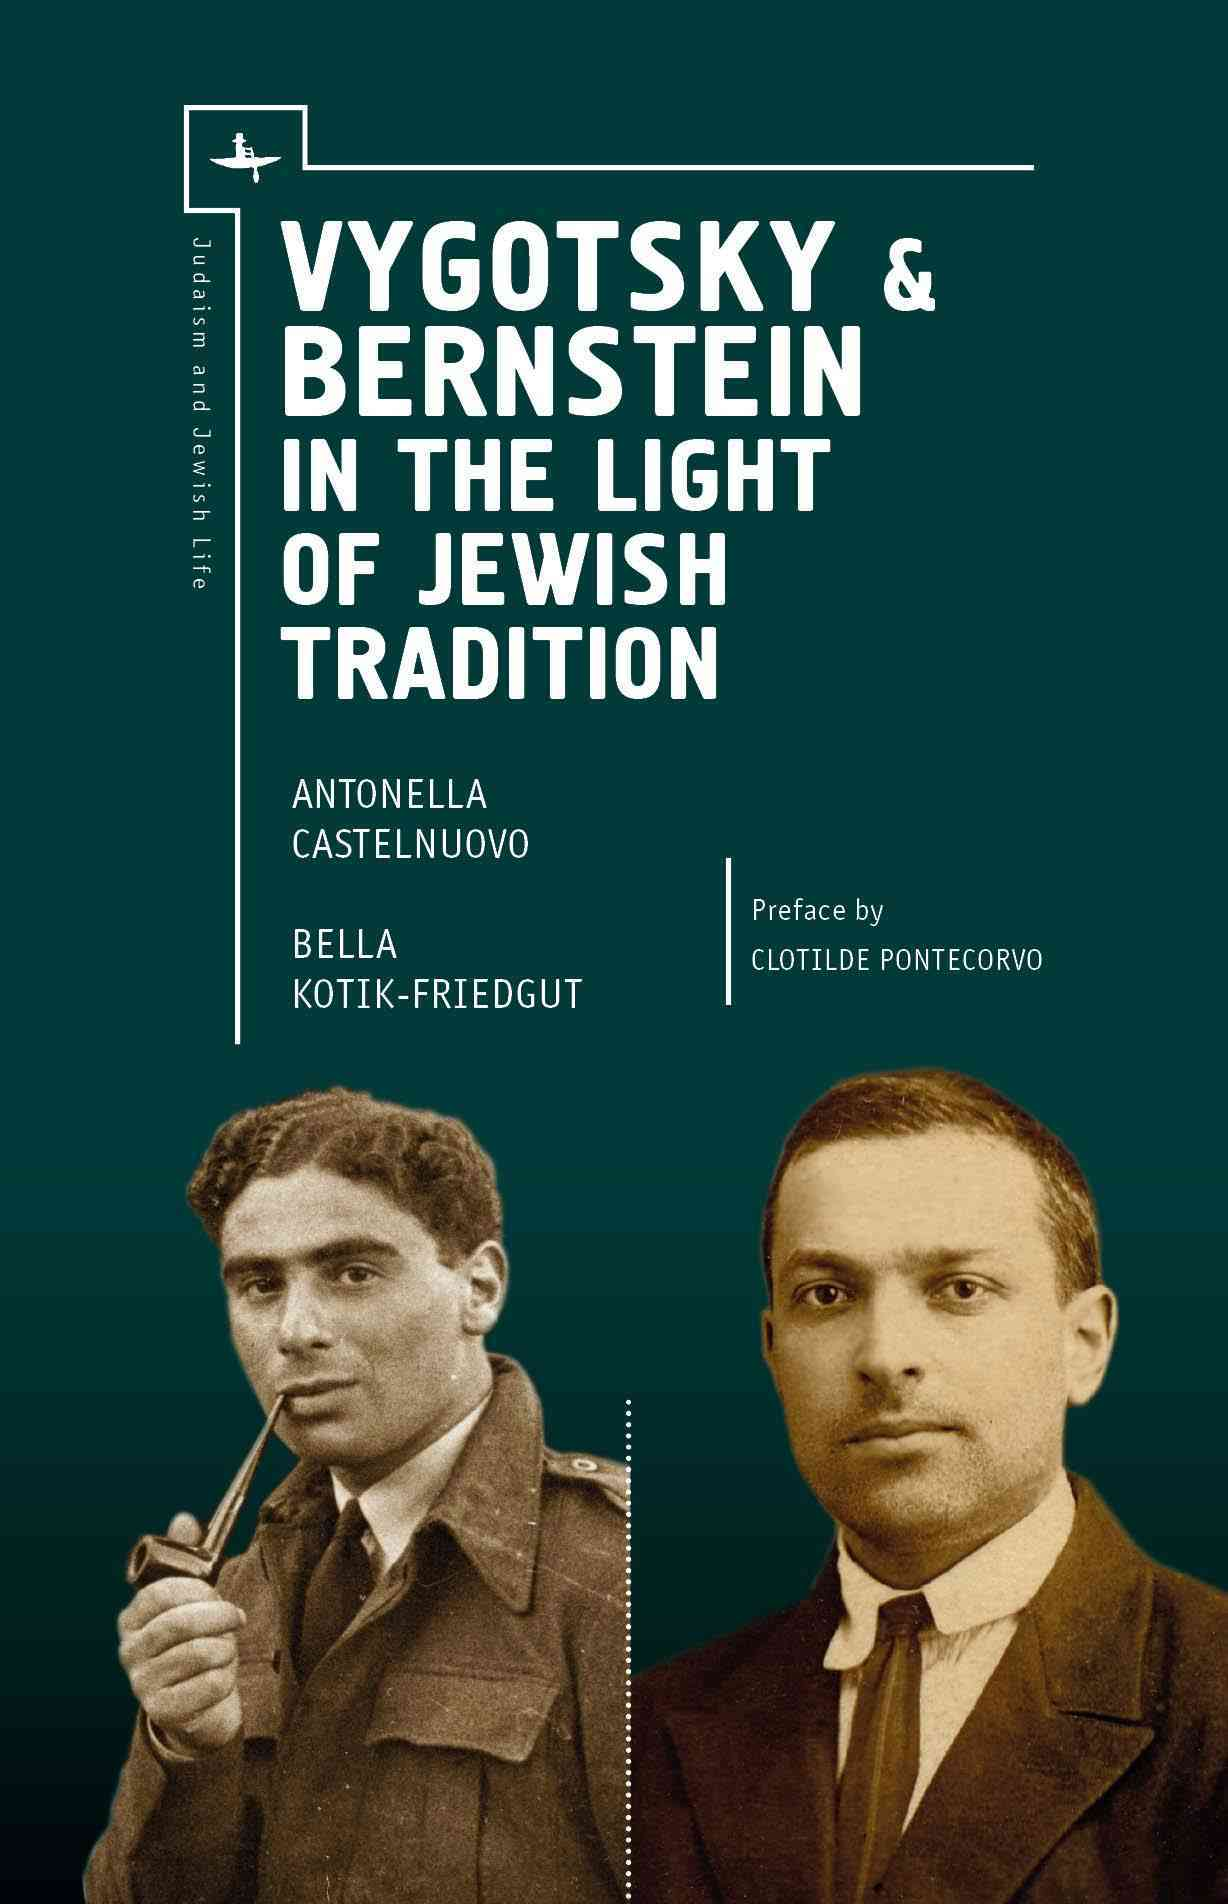 Vygotsky & Bernstein in the Light of Jewish Tradition (Hardcover)